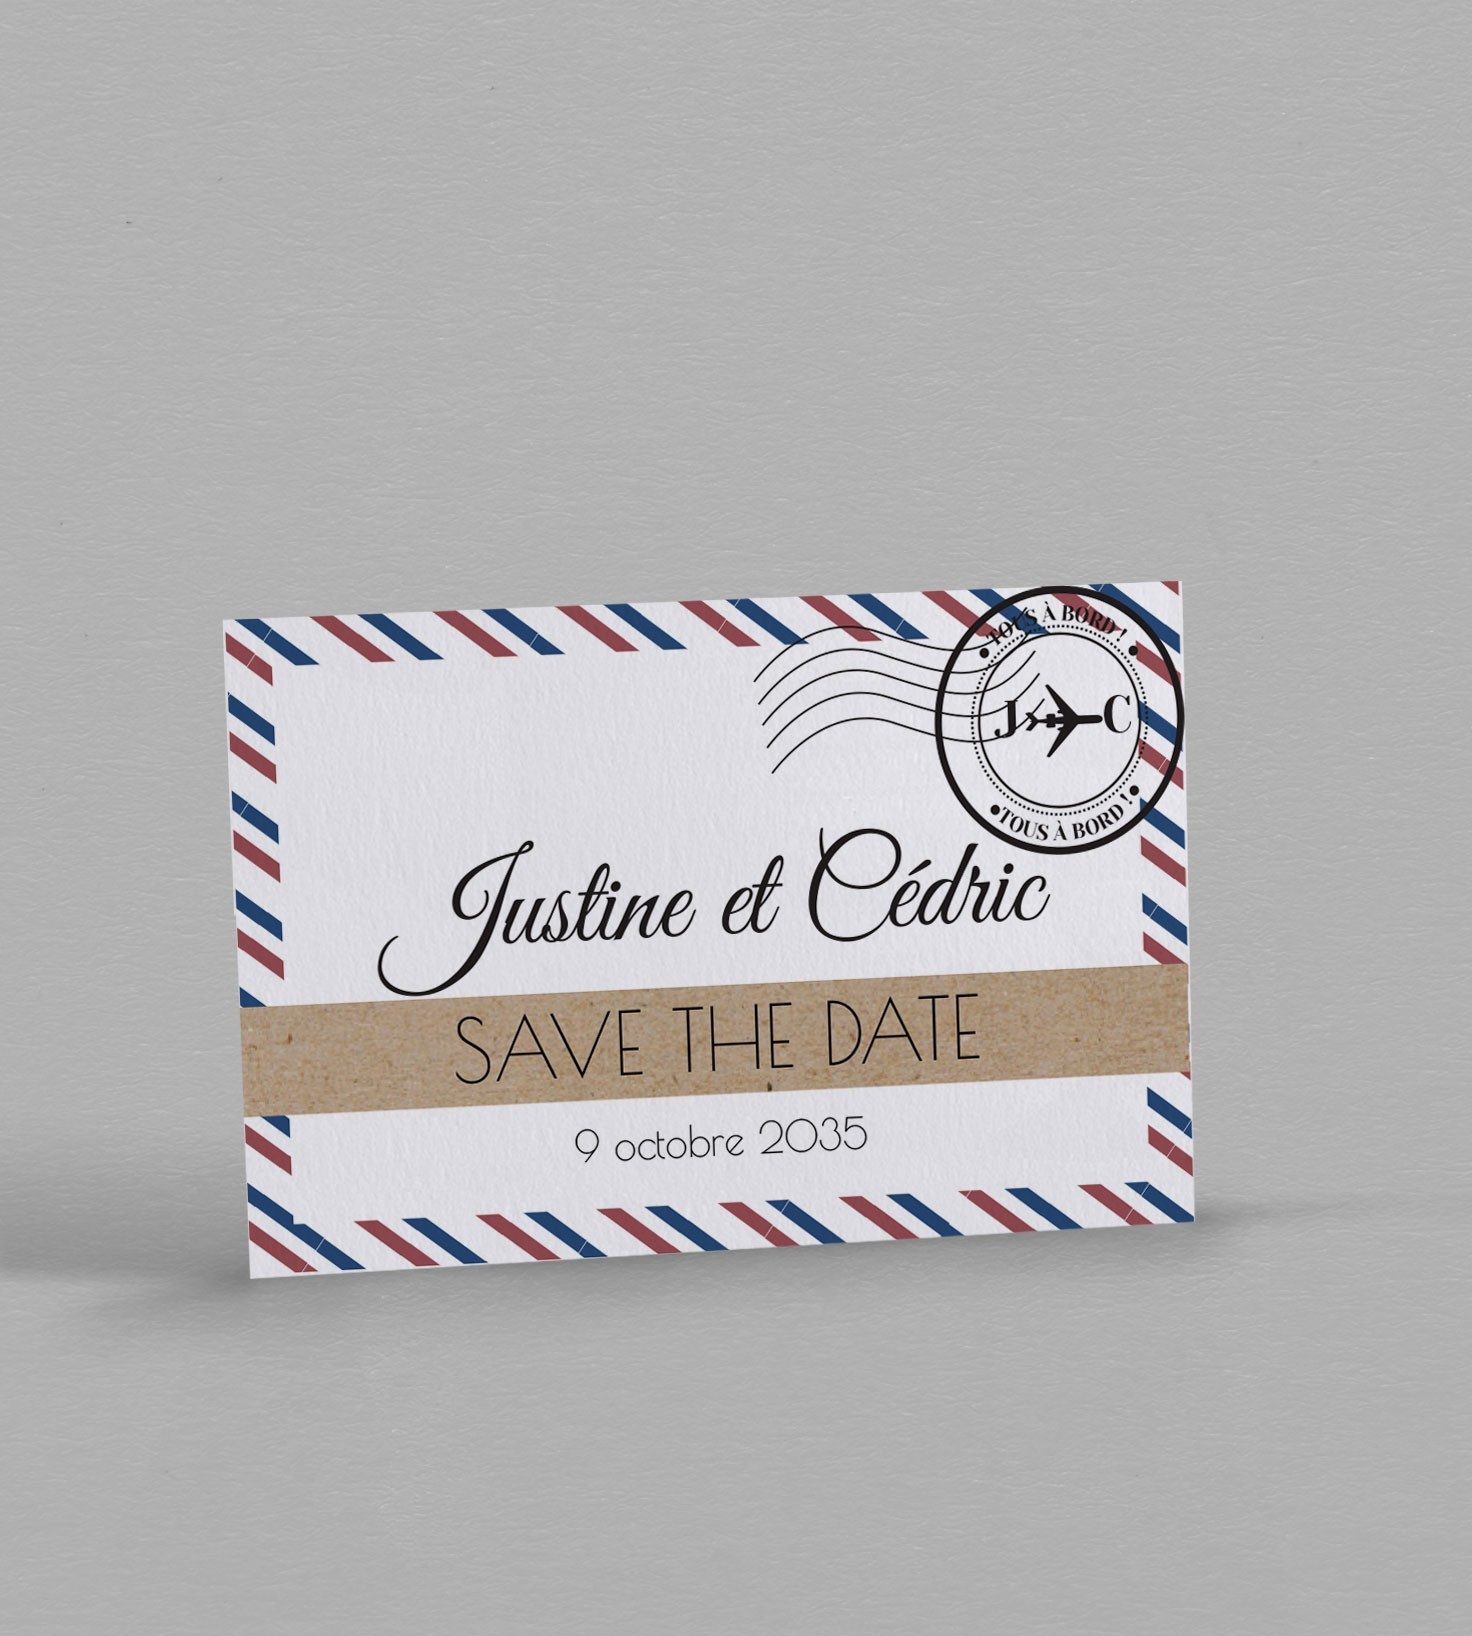 Vintage TICKET save the date cartes avec enveloppes-mariage invitations